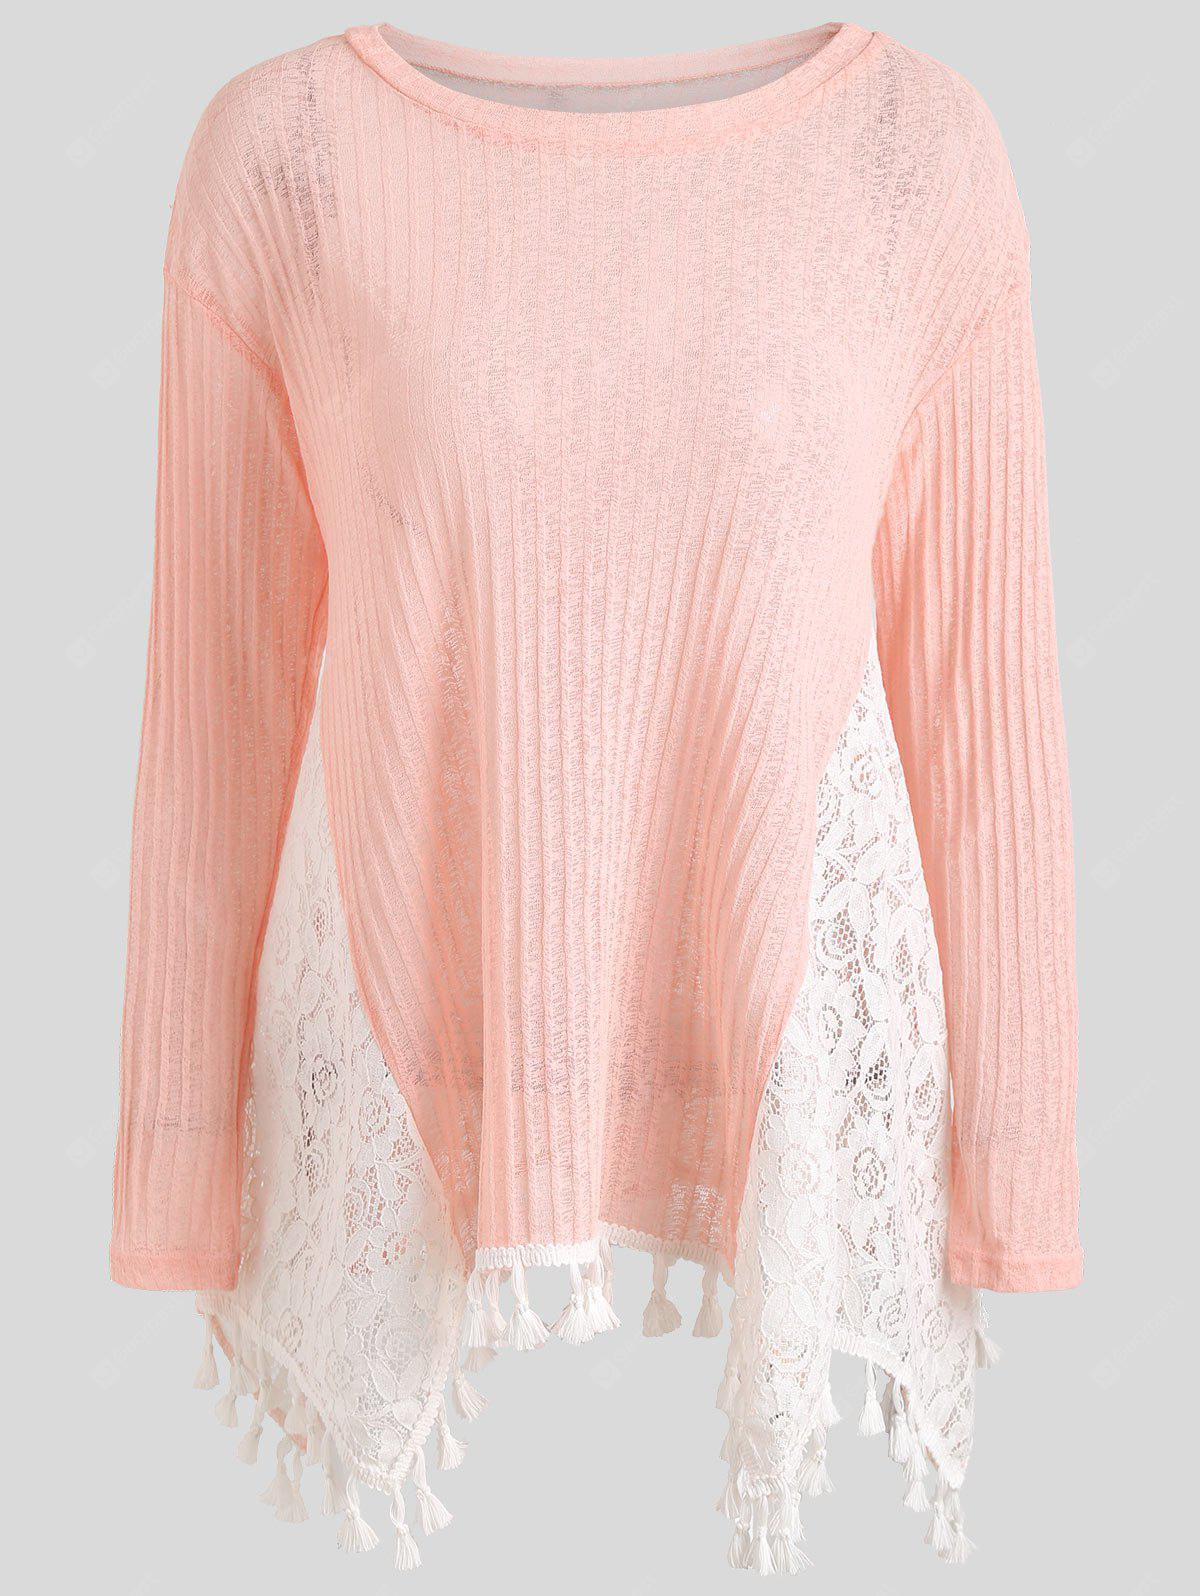 Semi Sheer Lace Trim Tassel T-shirt